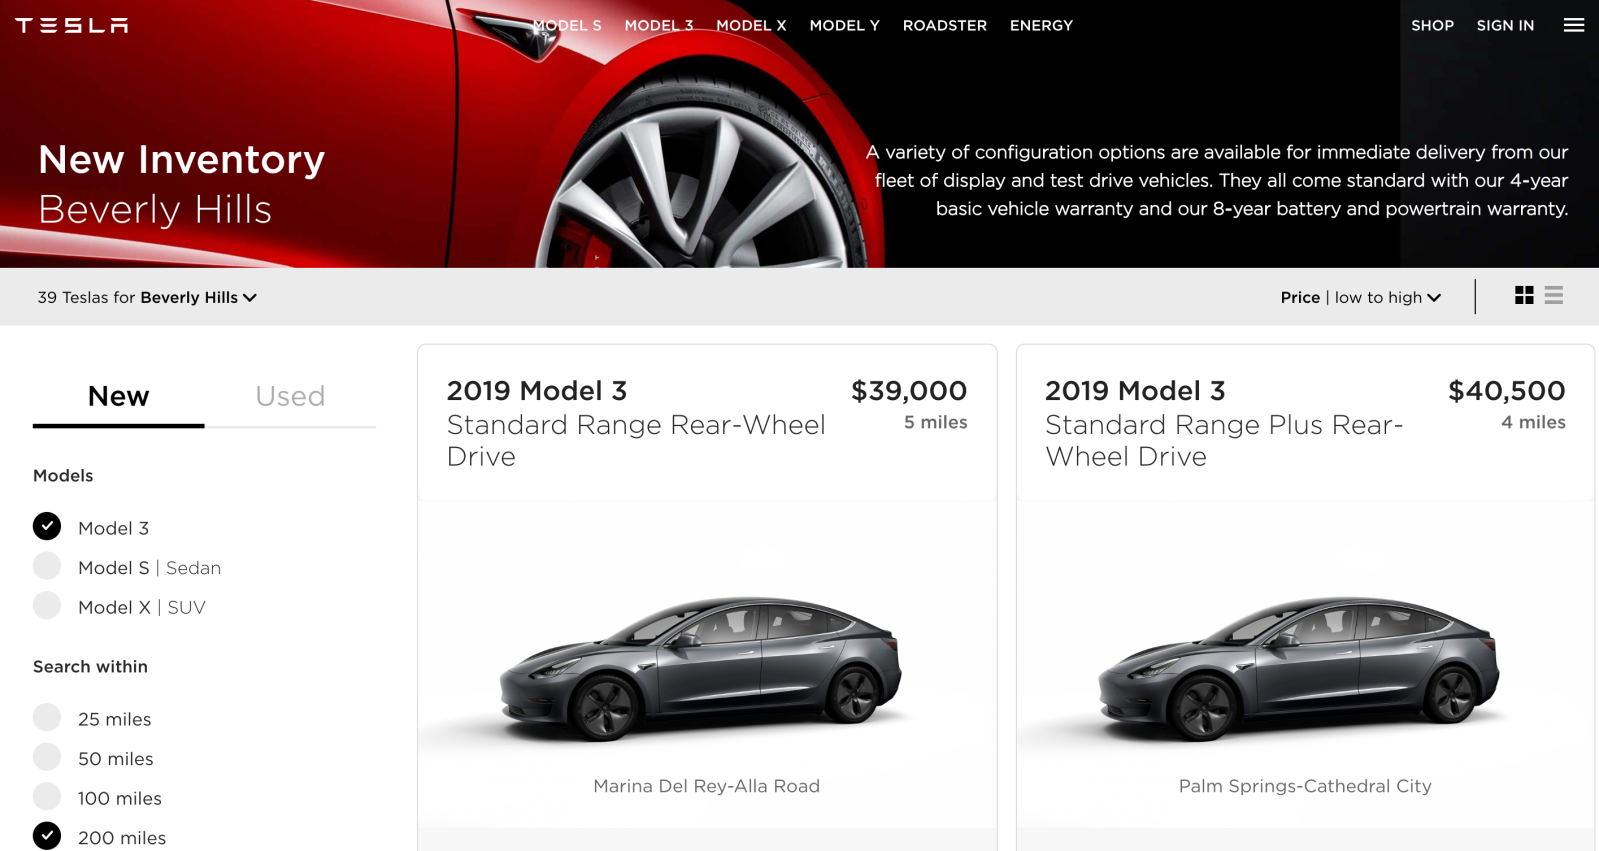 Tesla puts new Model 3 inventory online for browsing and